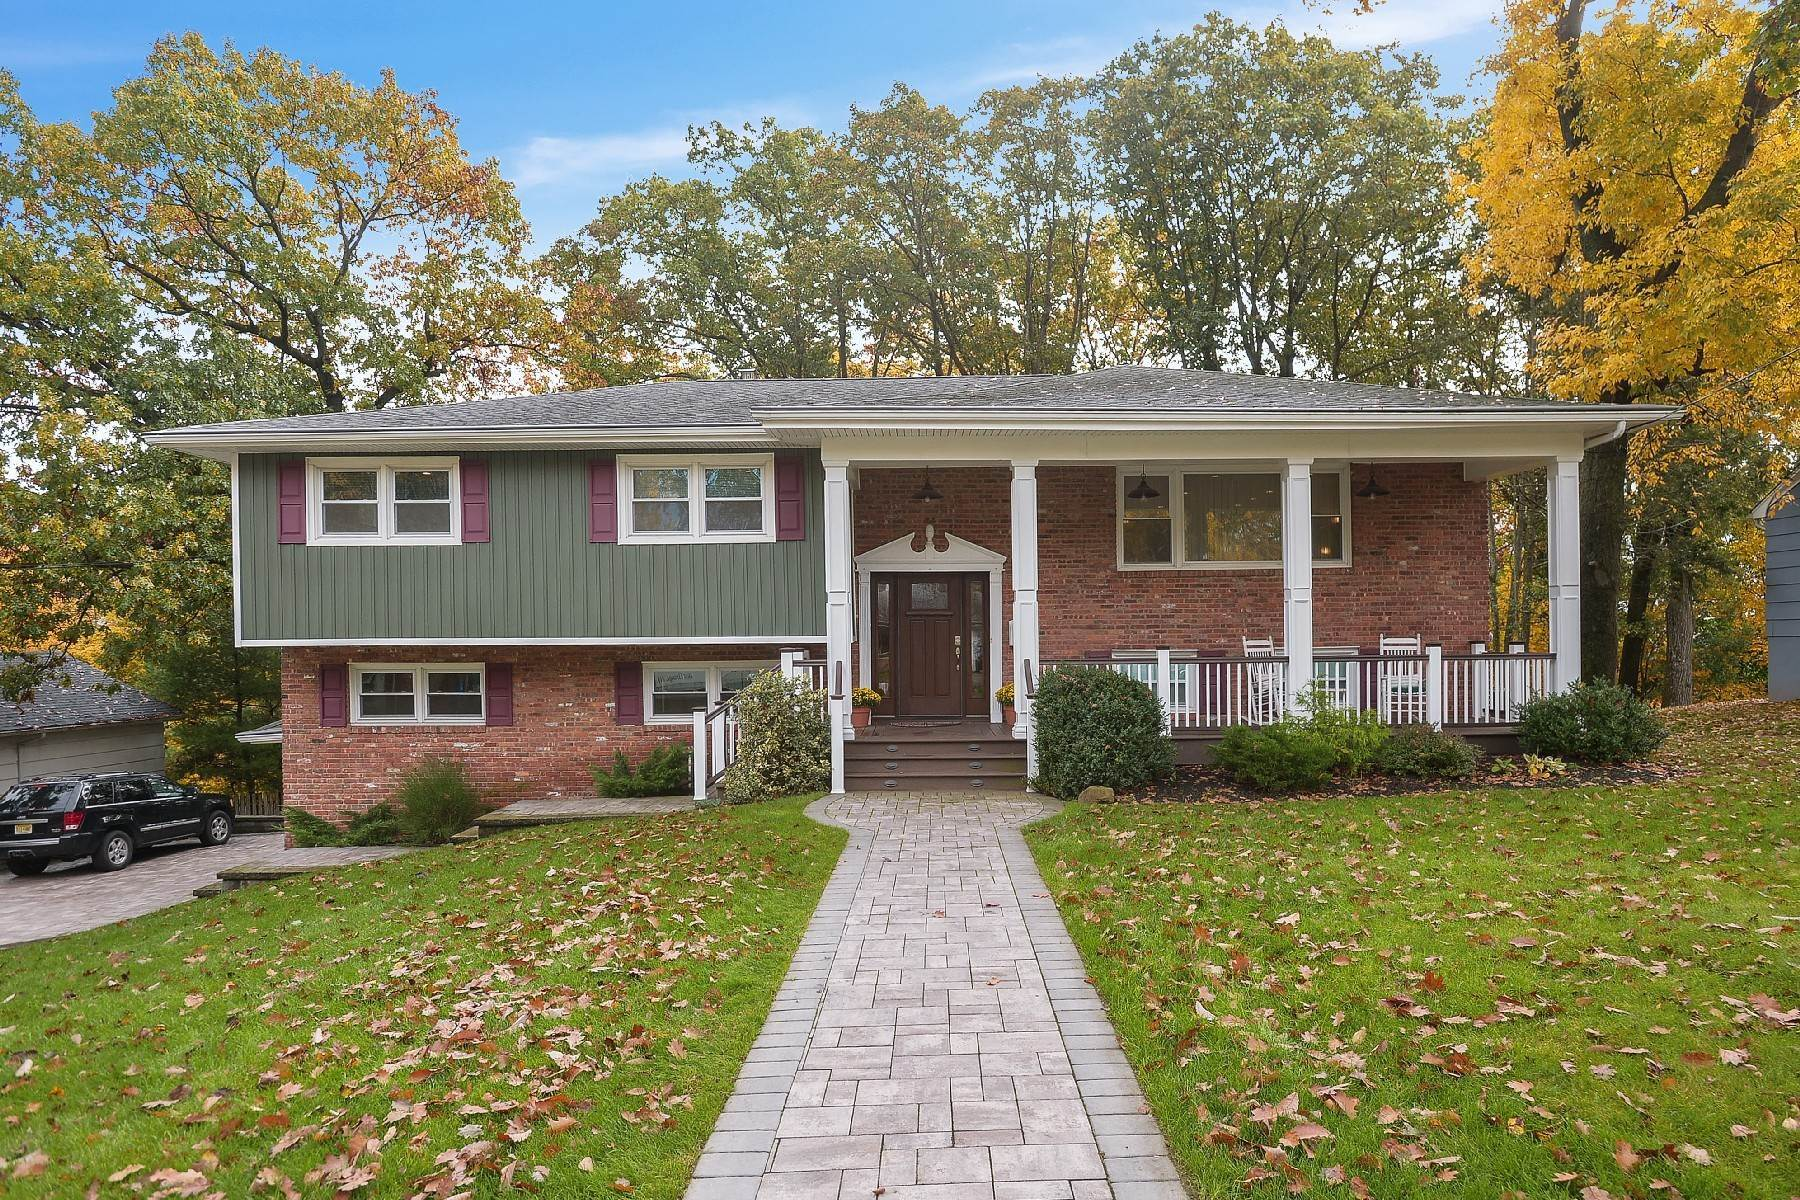 Single Family Homes for Sale at Open Concept - Hip House! 34 Edgemont Road West Orange, New Jersey 07052 United States